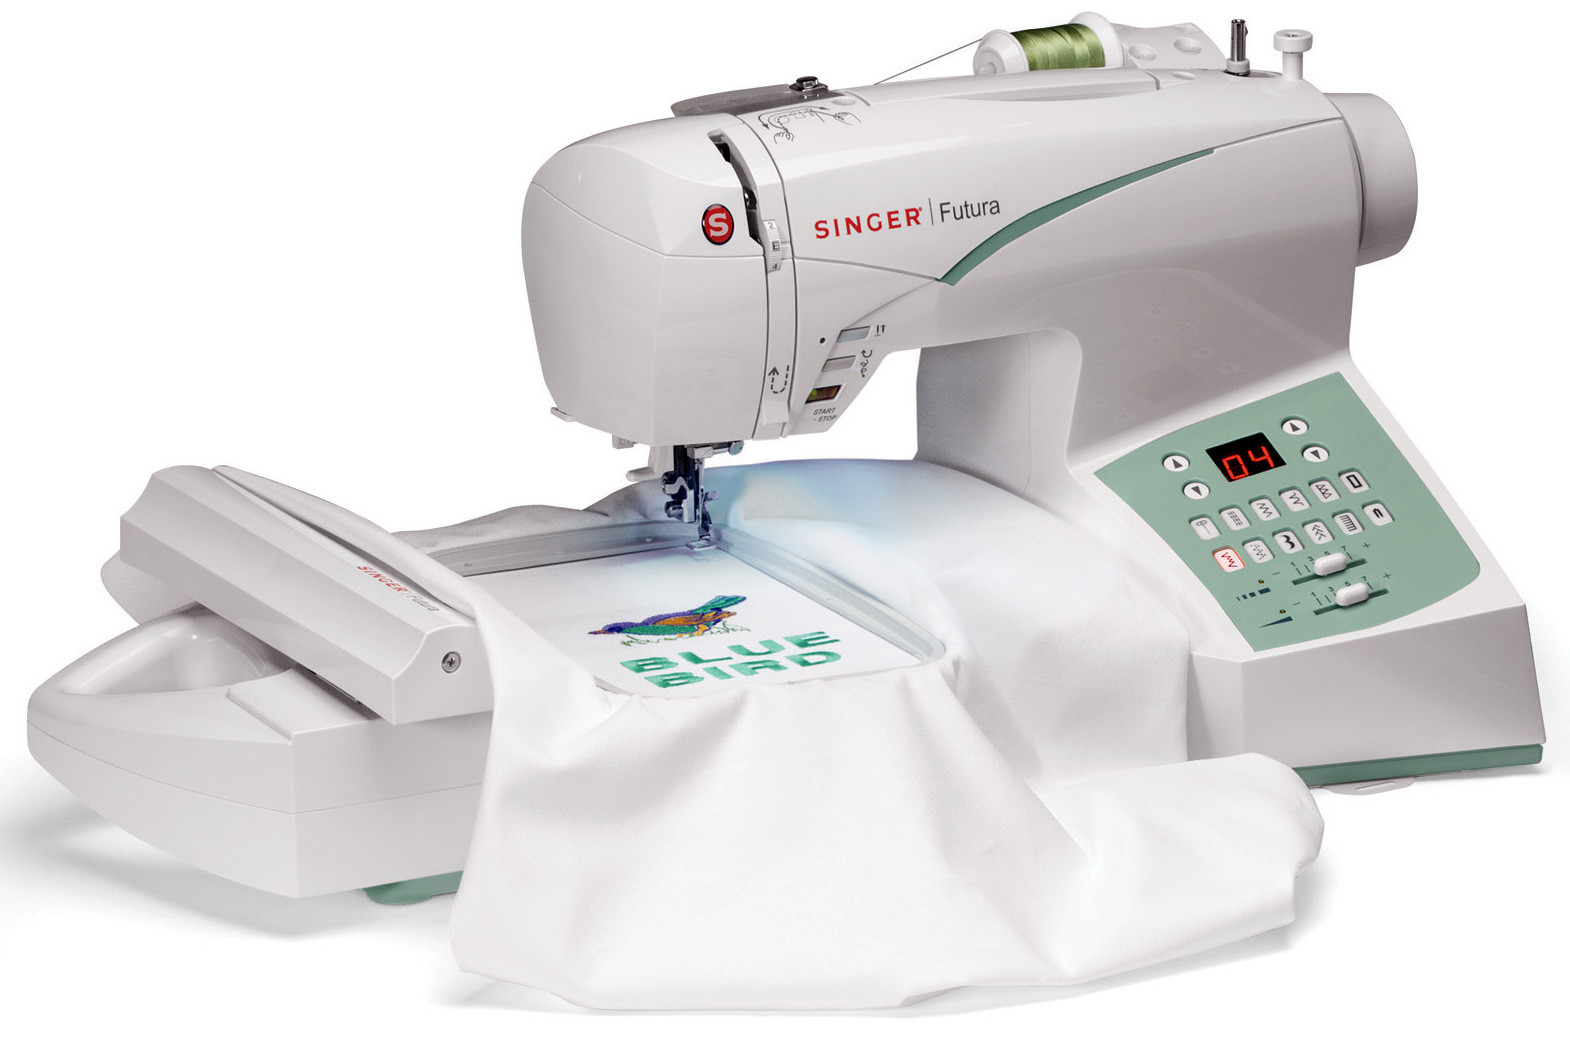 Sewing and Embroidery Machine Inspirational Singer Futura Ce 250 W Dvd & 3900 Designs Of Unique 48 Pics Sewing and Embroidery Machine